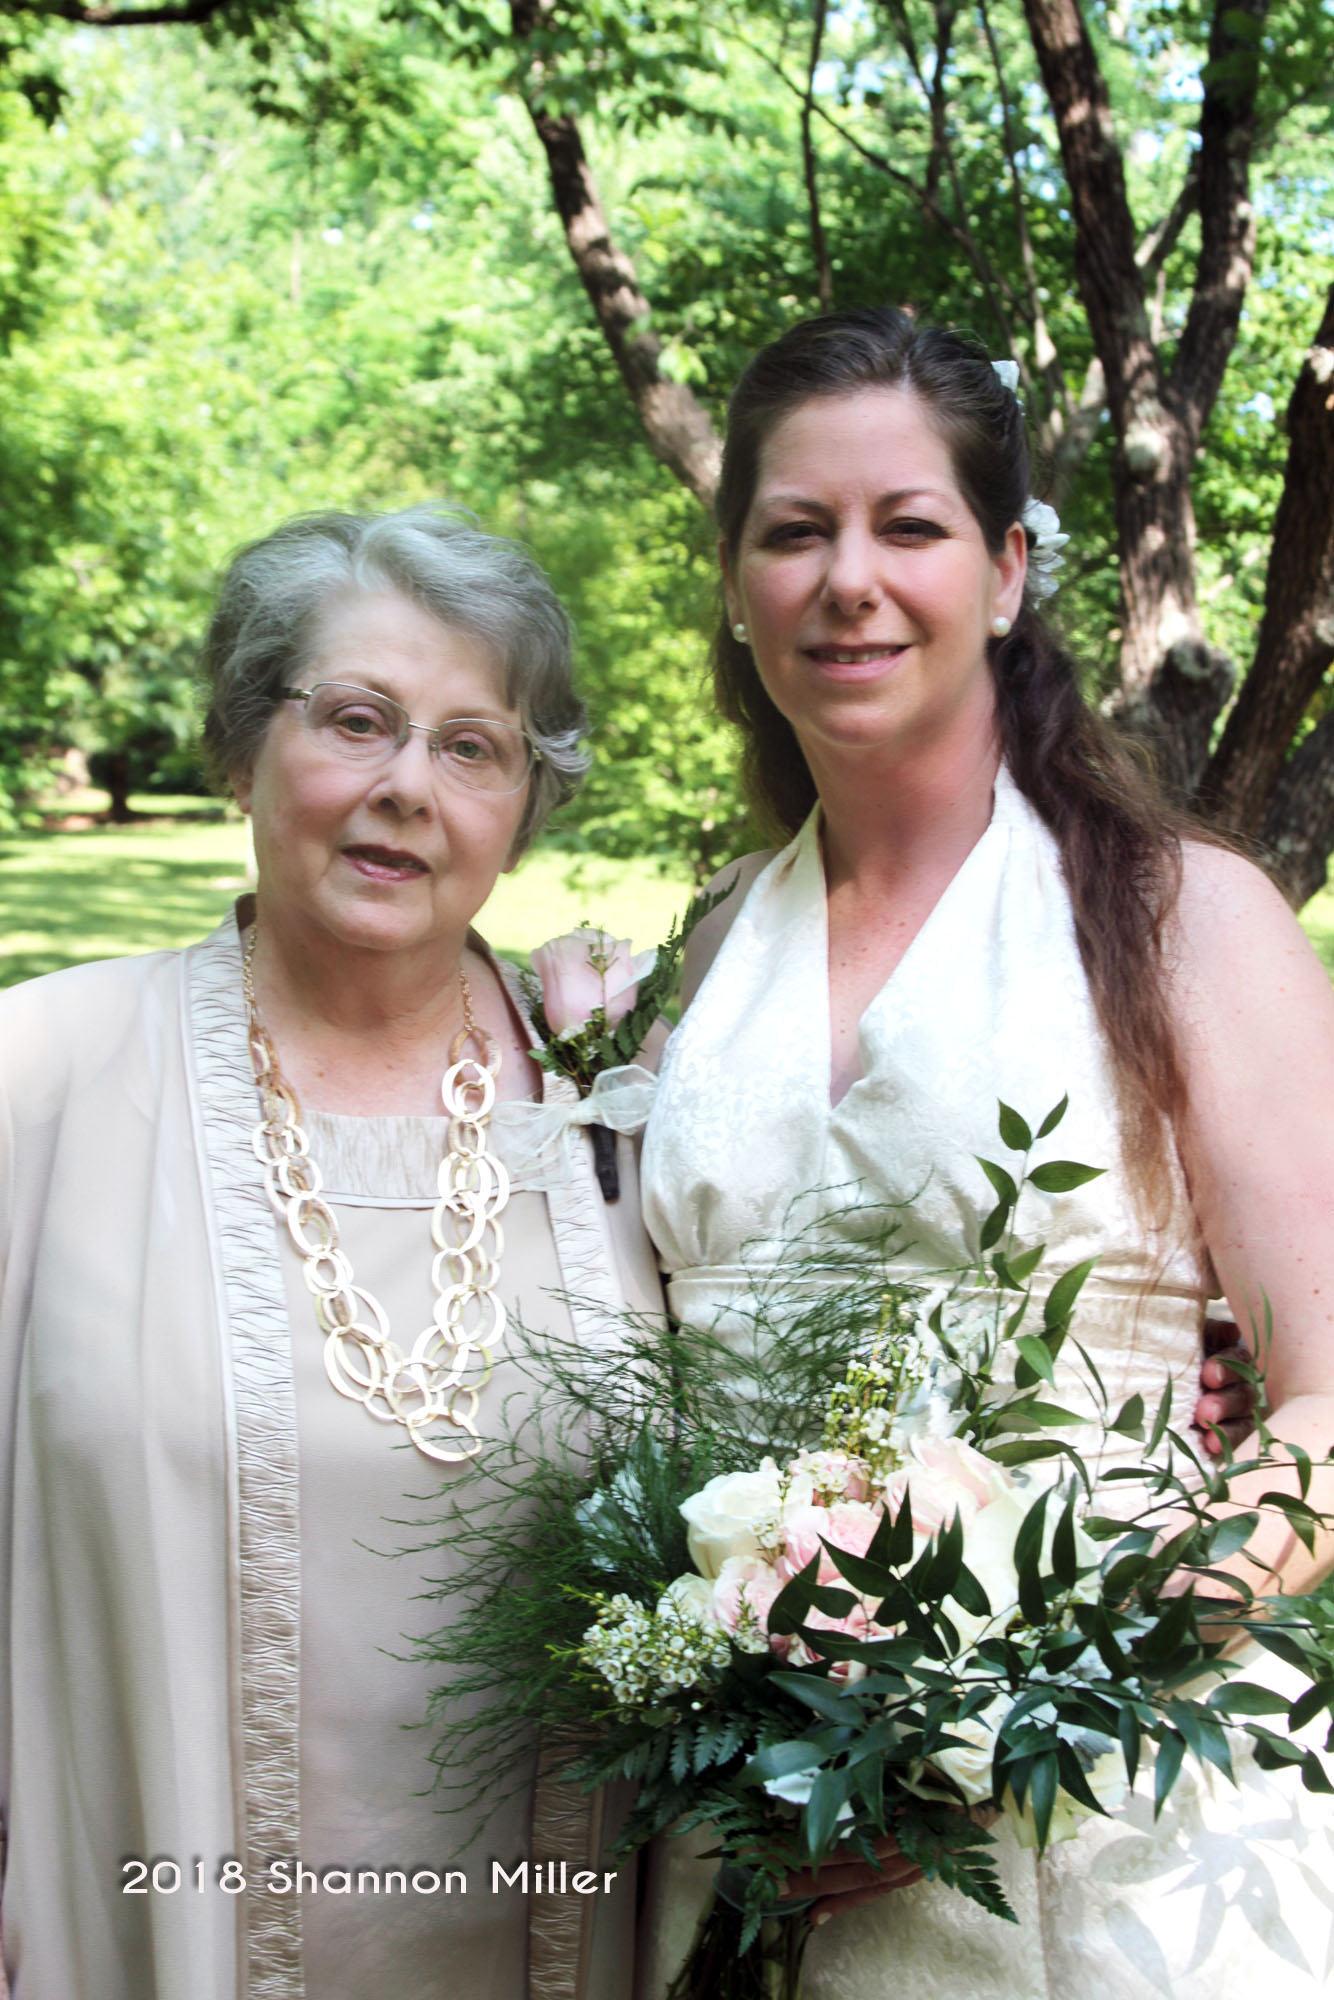 The bride's mother, Jan with her beautiful bride daughter